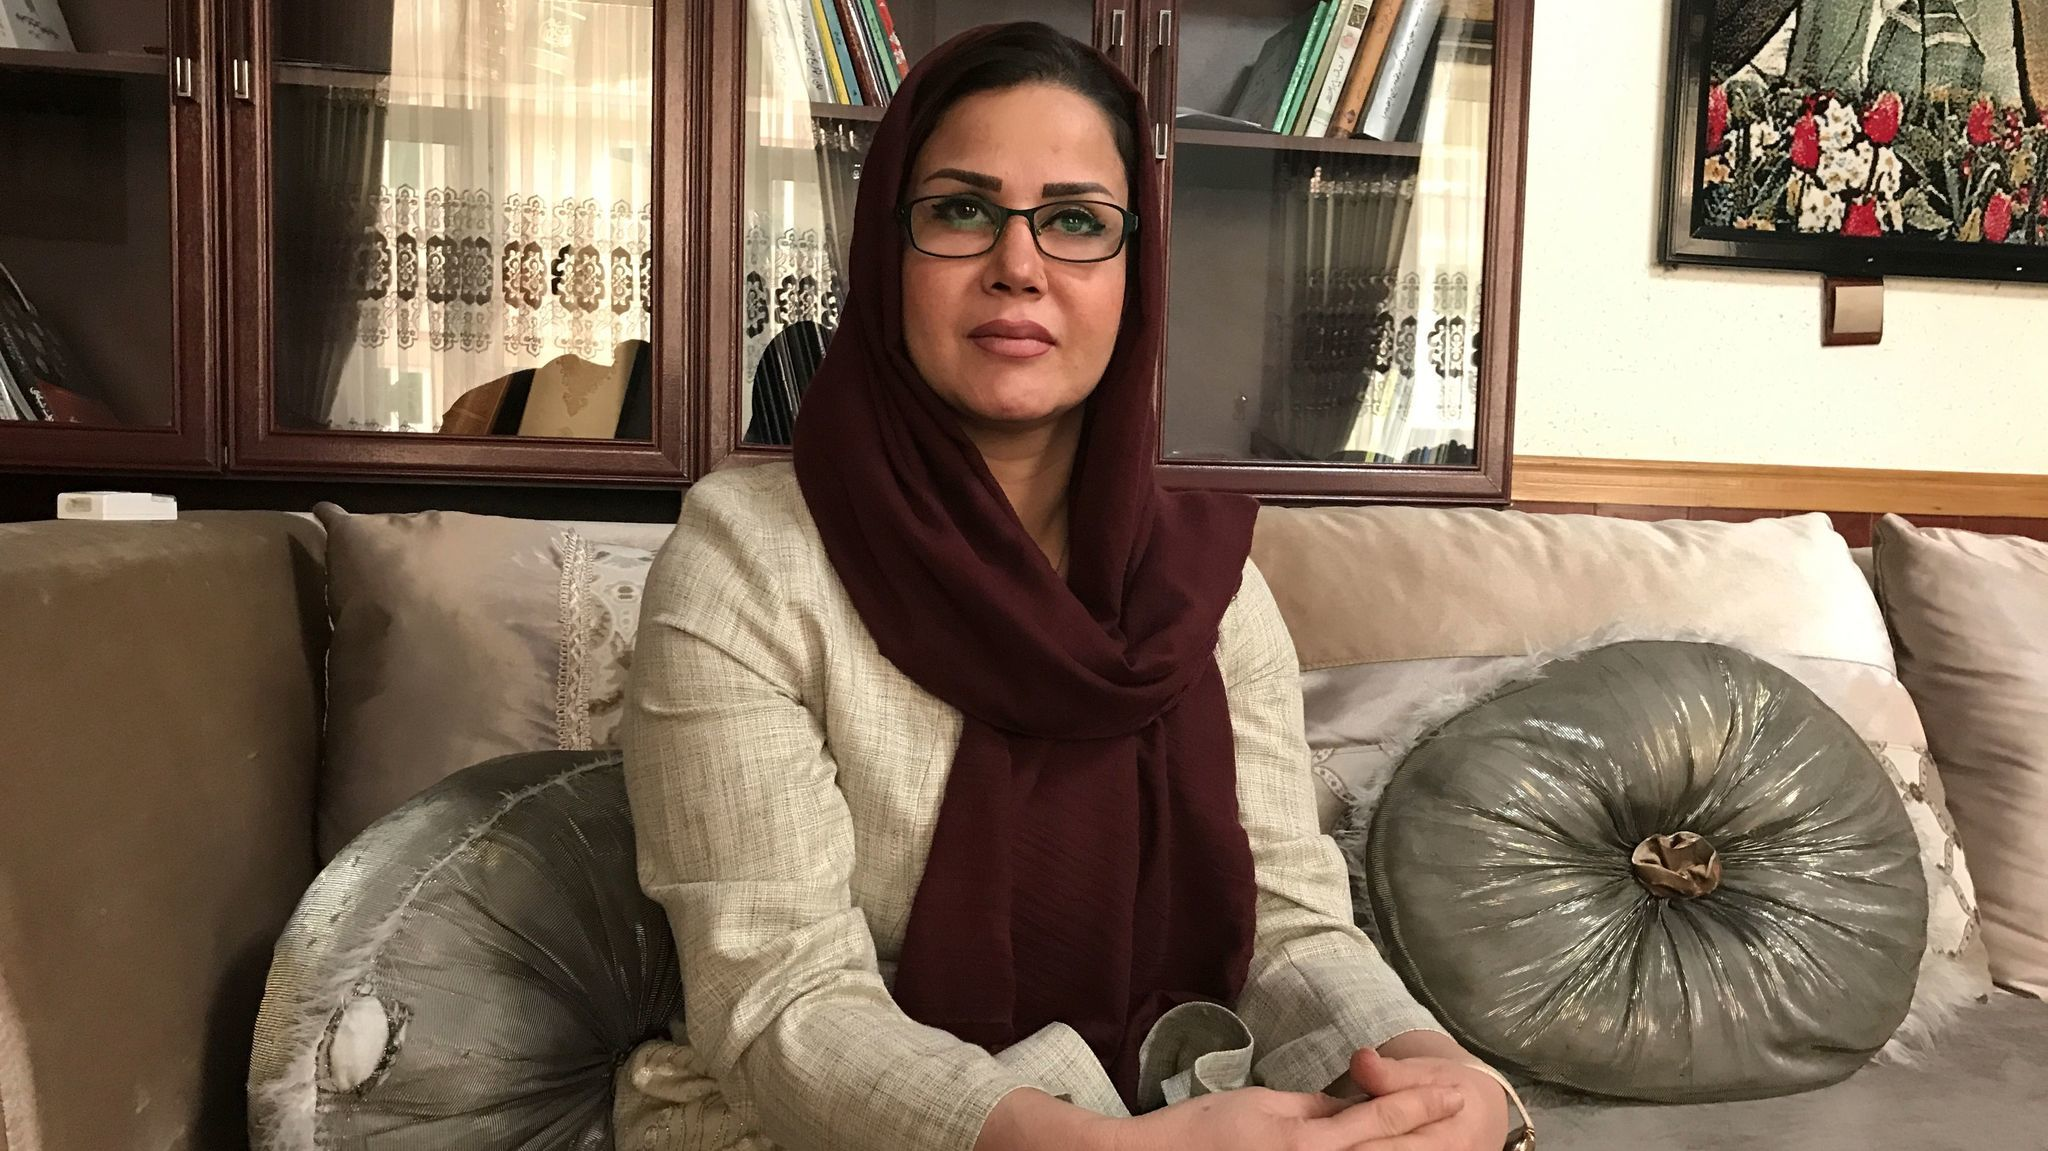 Waheeda Mohaqeq, 42, is considering running for office in Afghanistan if her husband approves.